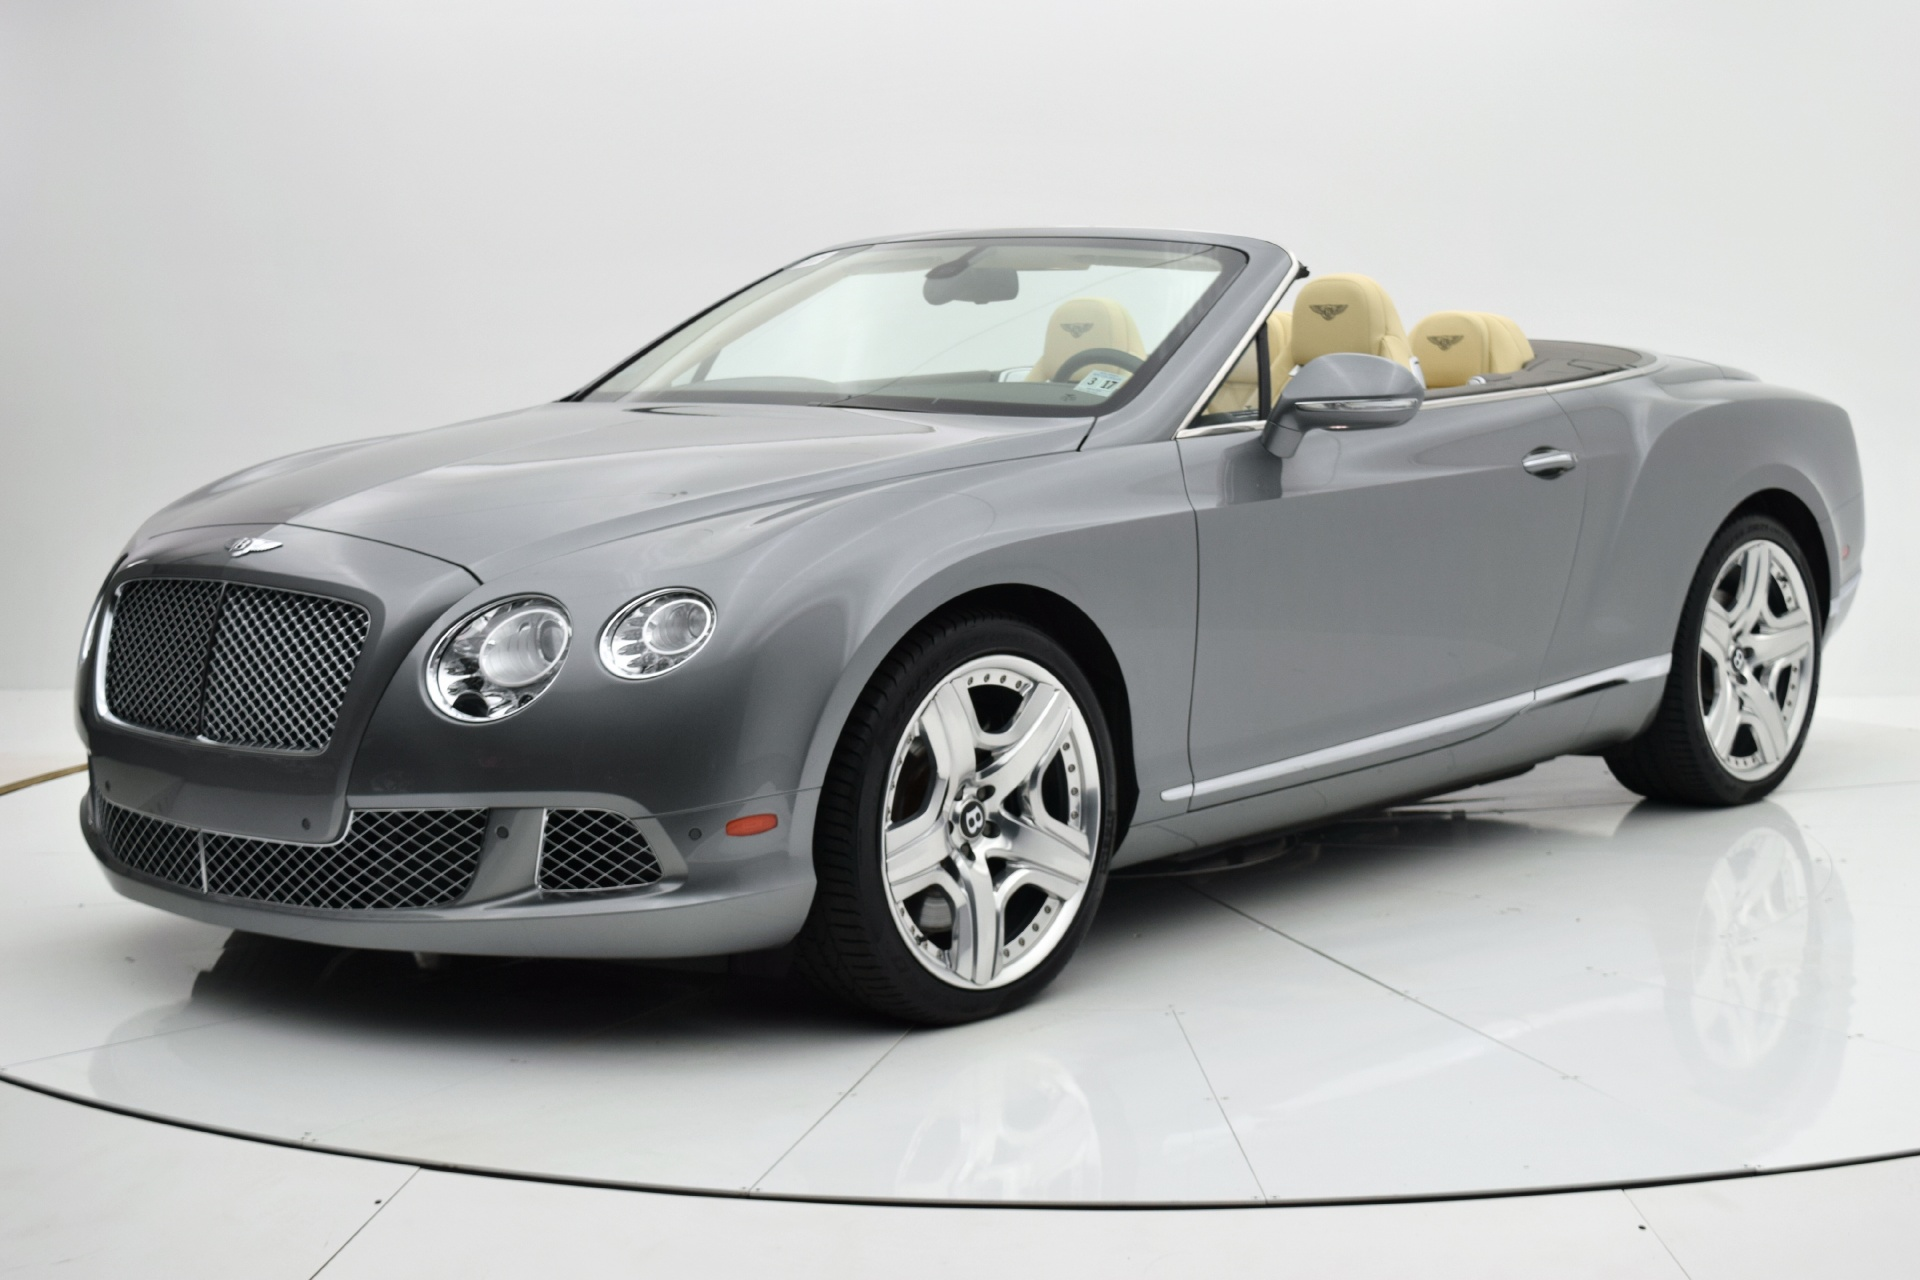 Used 2012 Bentley Continental GT W12 Convertible for sale Sold at F.C. Kerbeck Bentley Palmyra N.J. in Palmyra NJ 08065 2